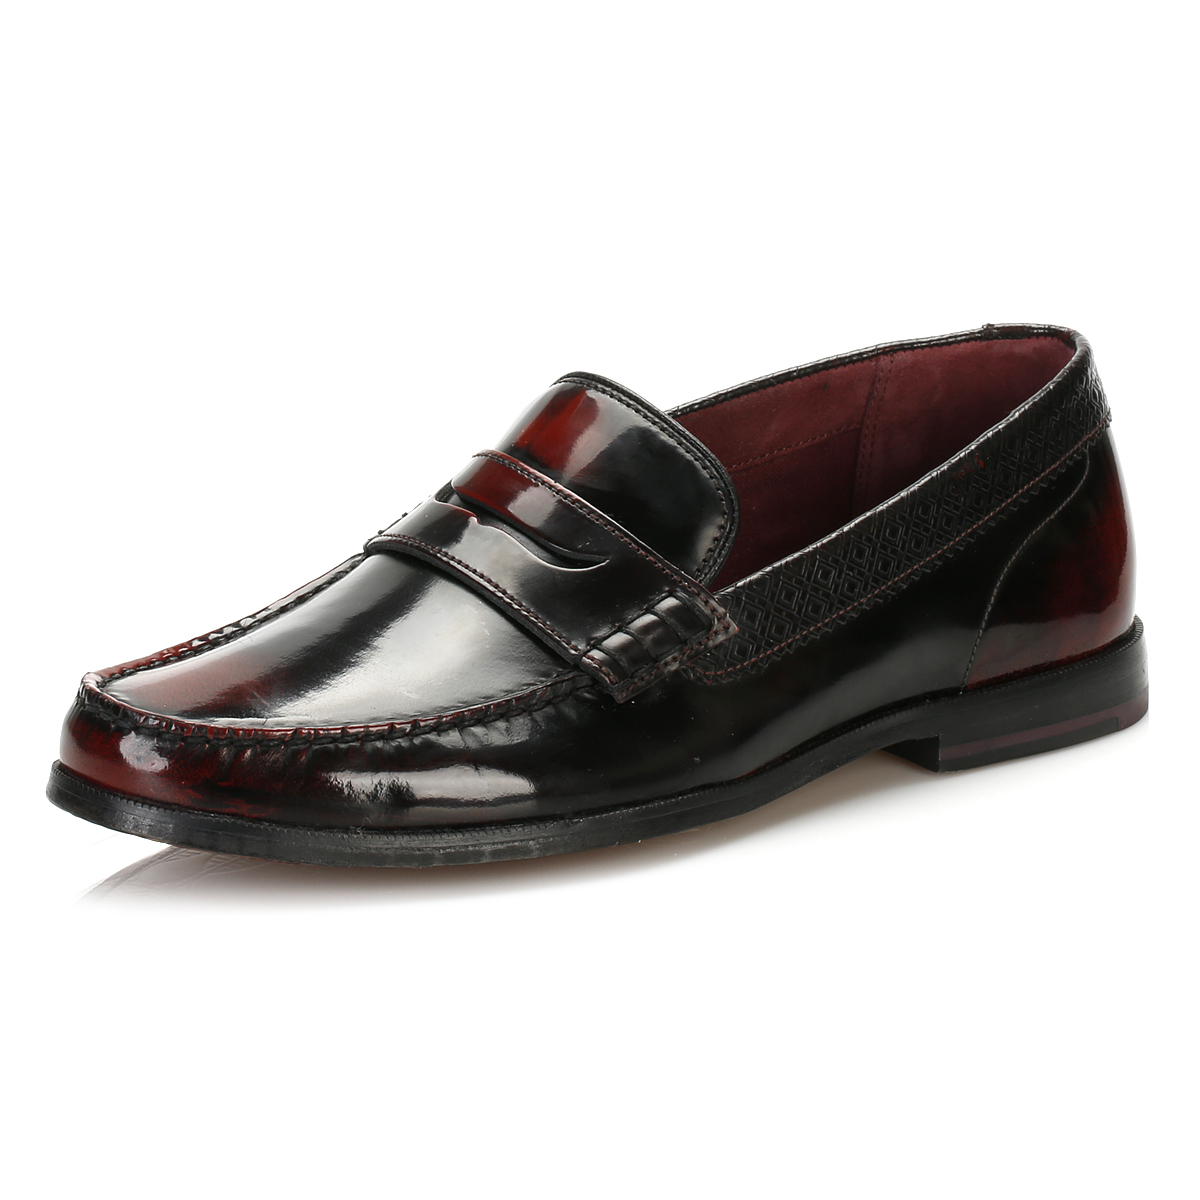 d8d6349955ef6 Details about Ted Baker Mens Formal Shoes Dark Red Leather Rommeo Loafers  Slip On Smarts